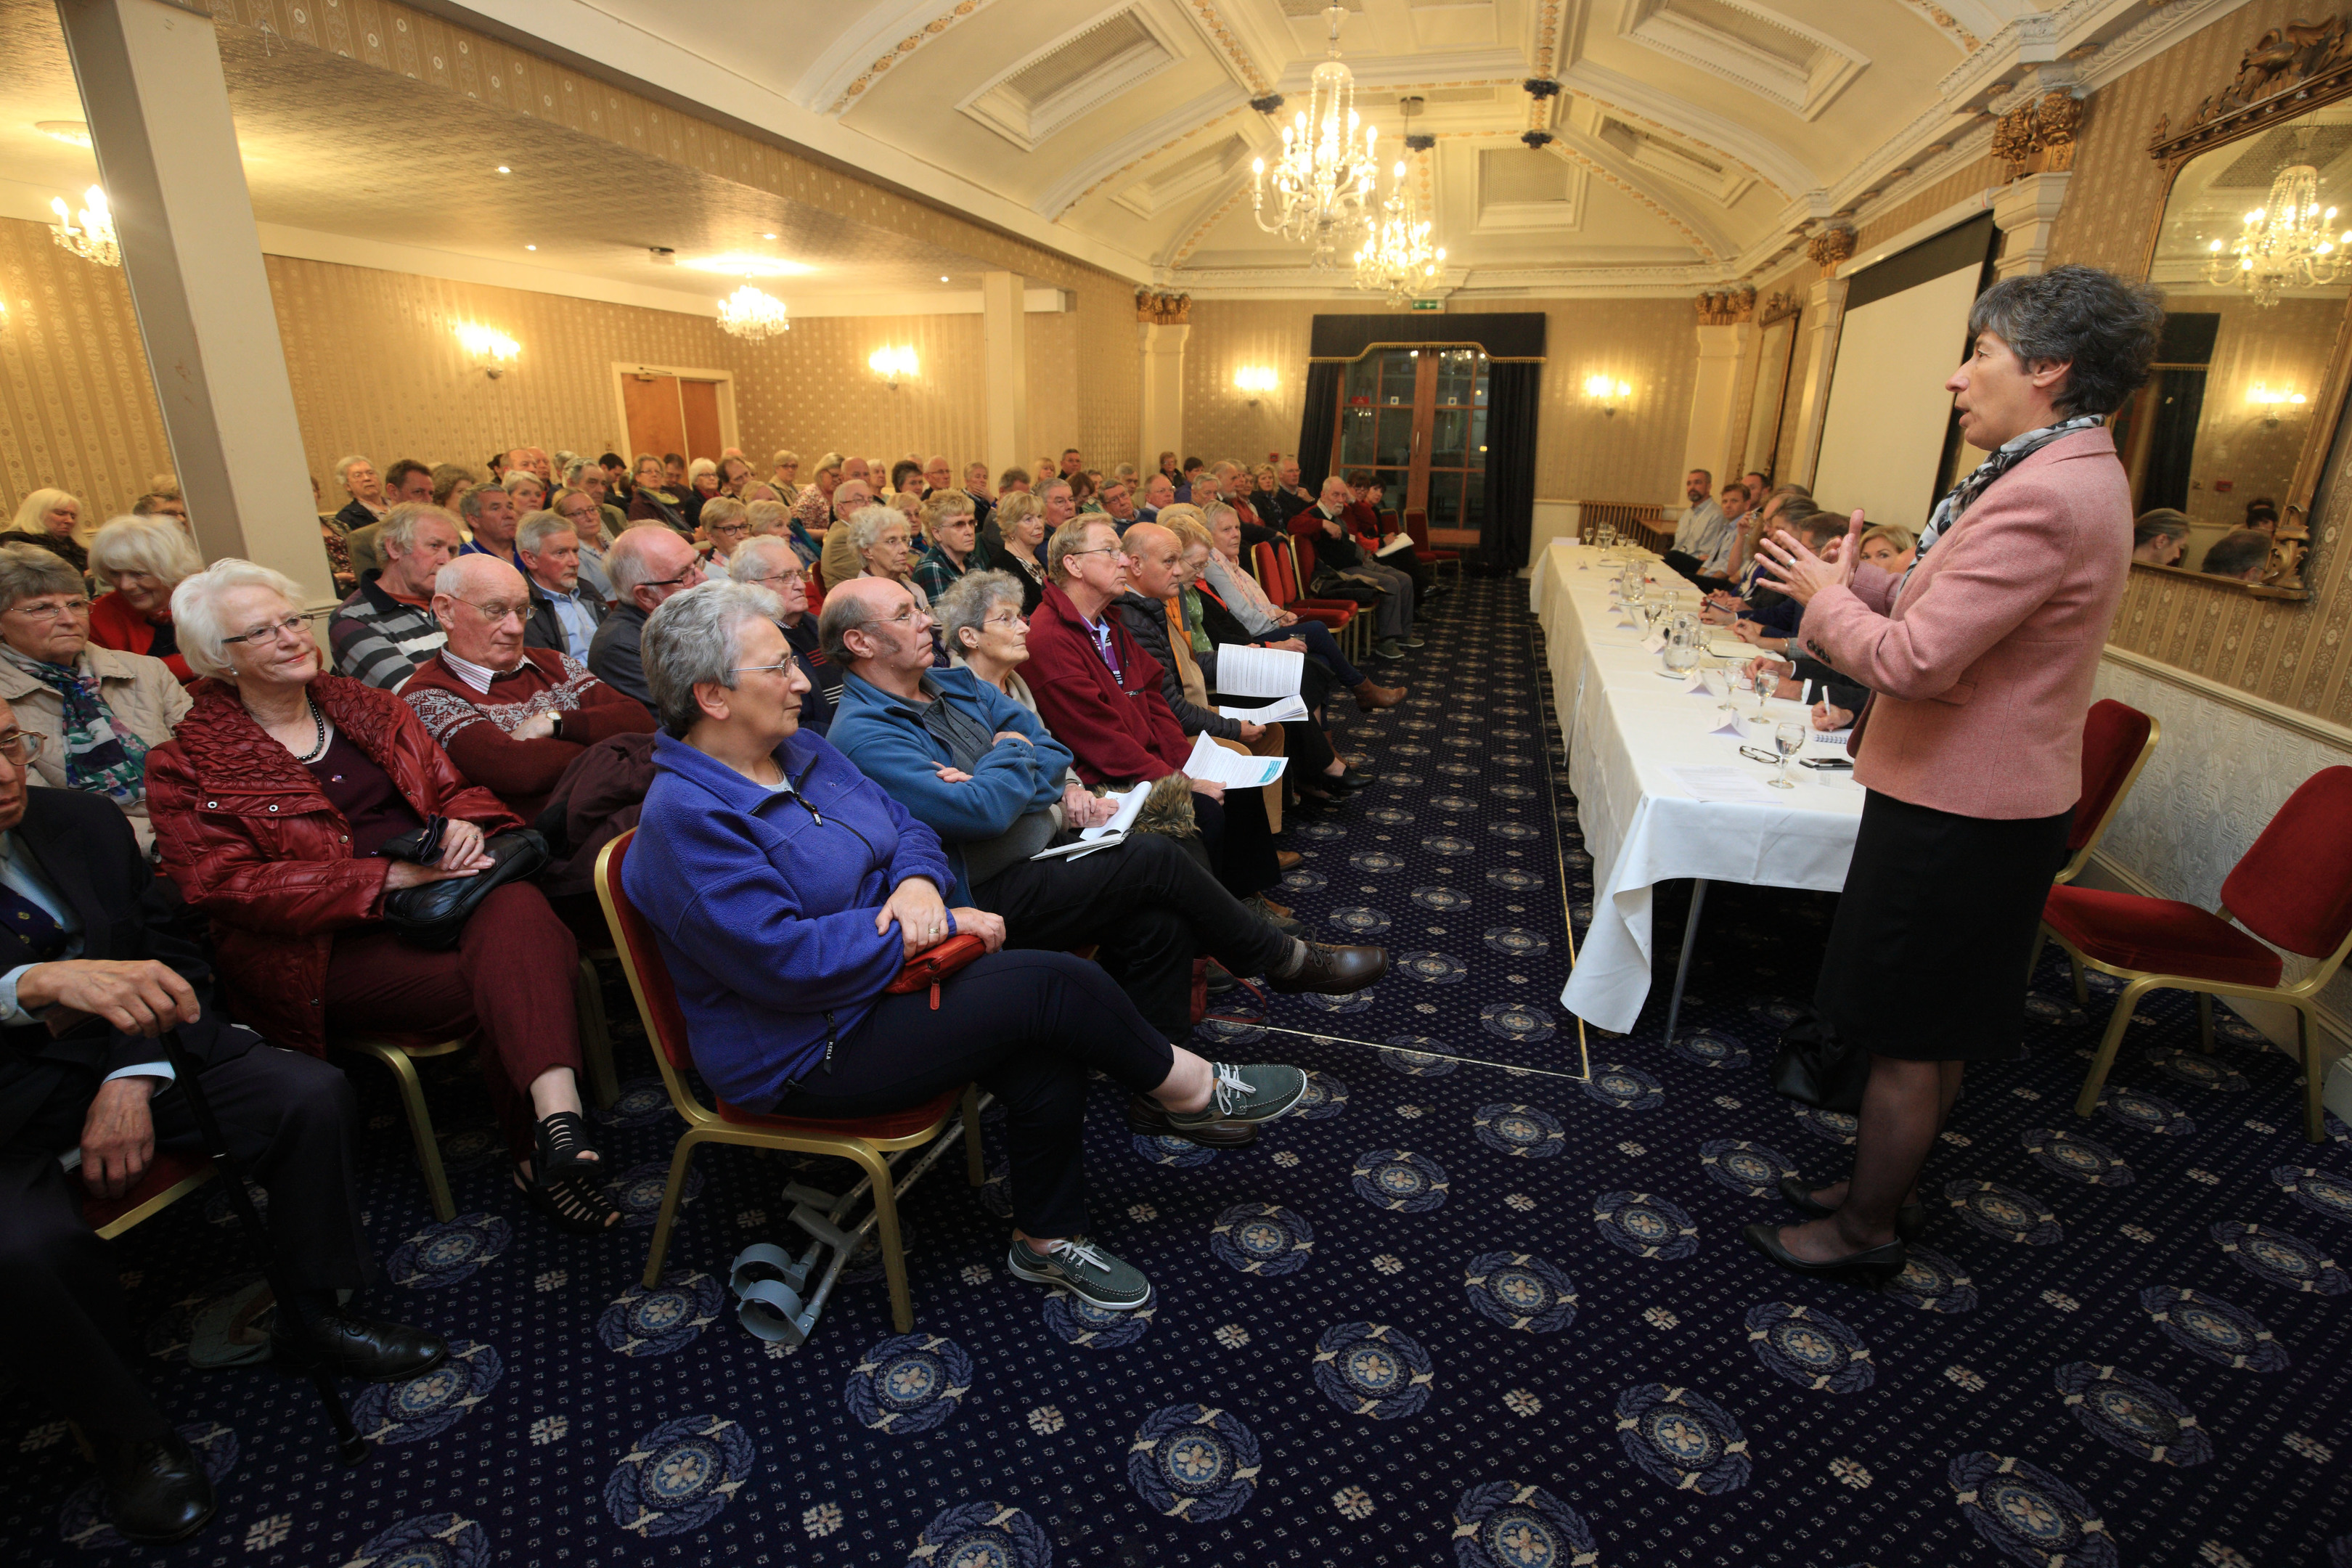 Liz Smith speaks at the Royal George Hote